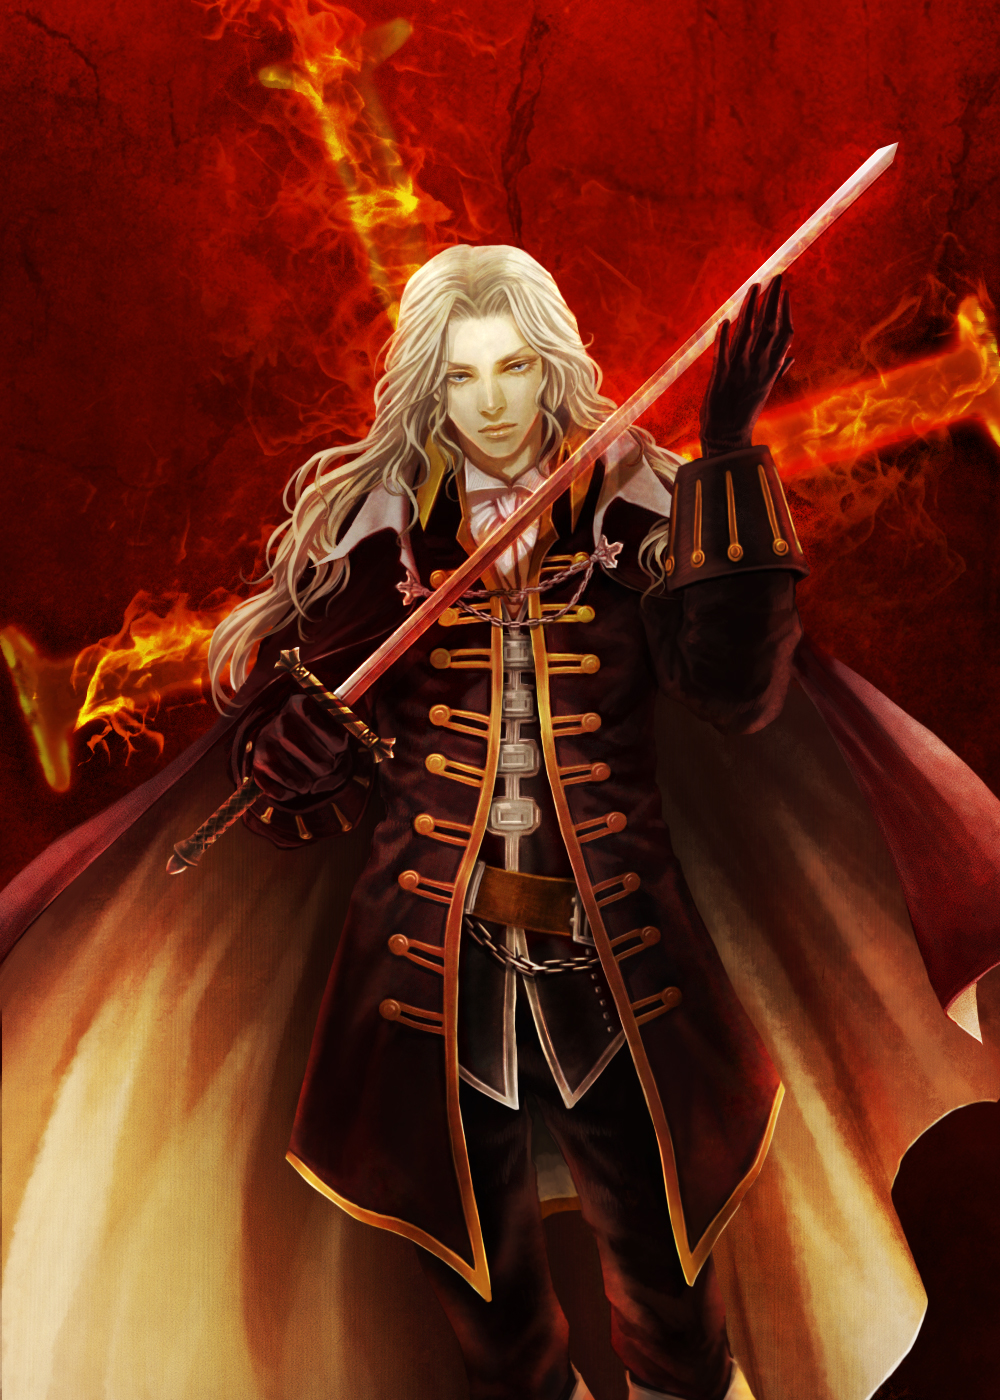 alucard  castlevania  - castlevania  symphony of the night - mobile wallpaper  559522